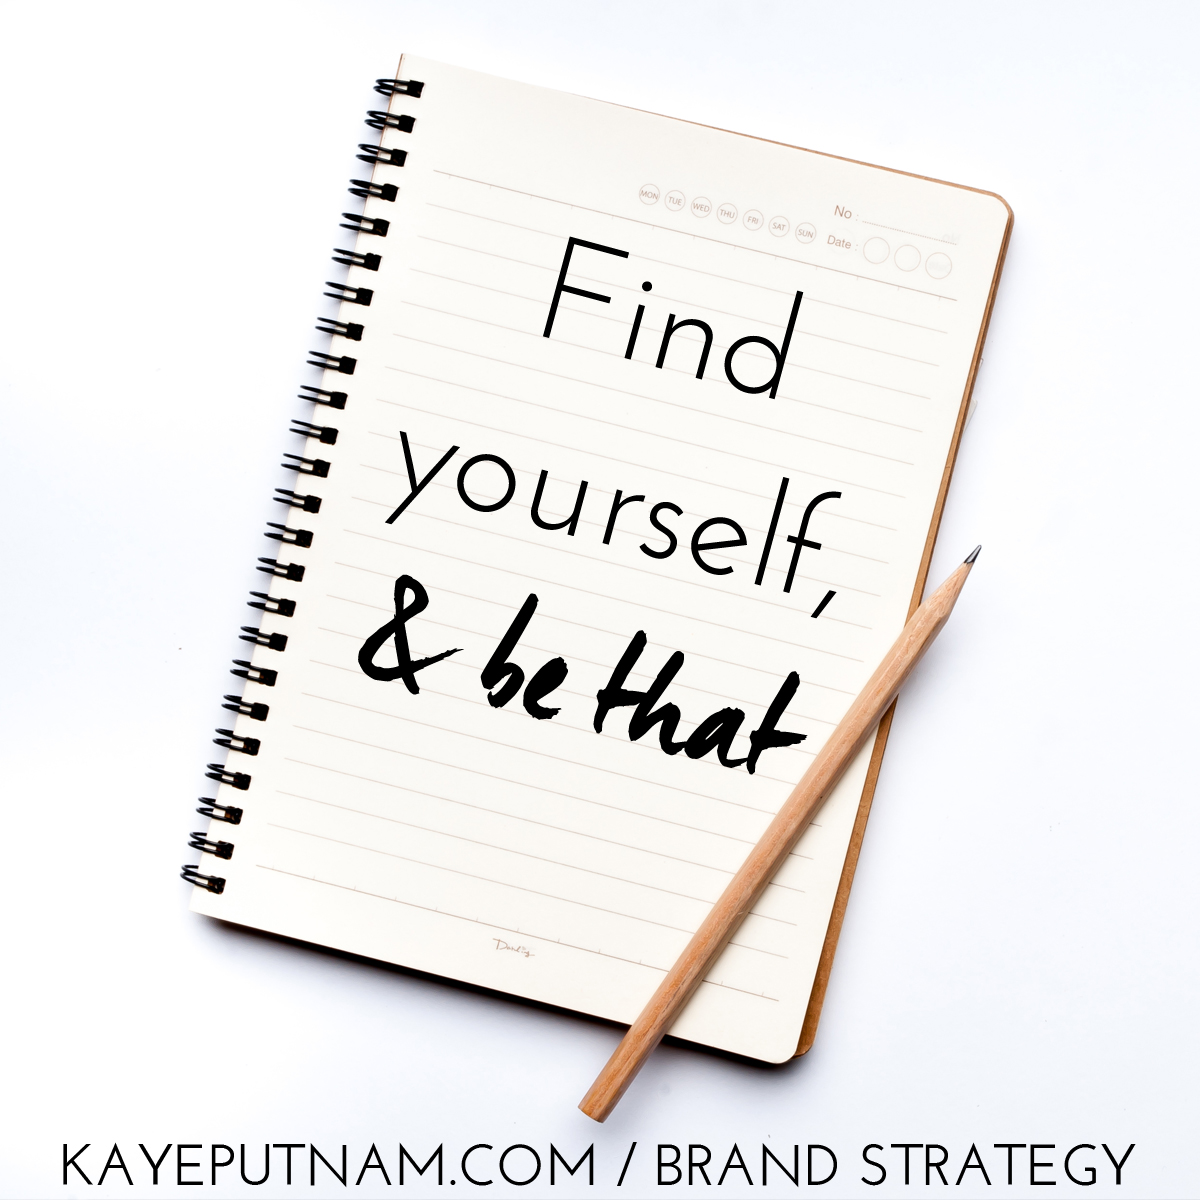 Find yourself, and be that. #InDemandBrand